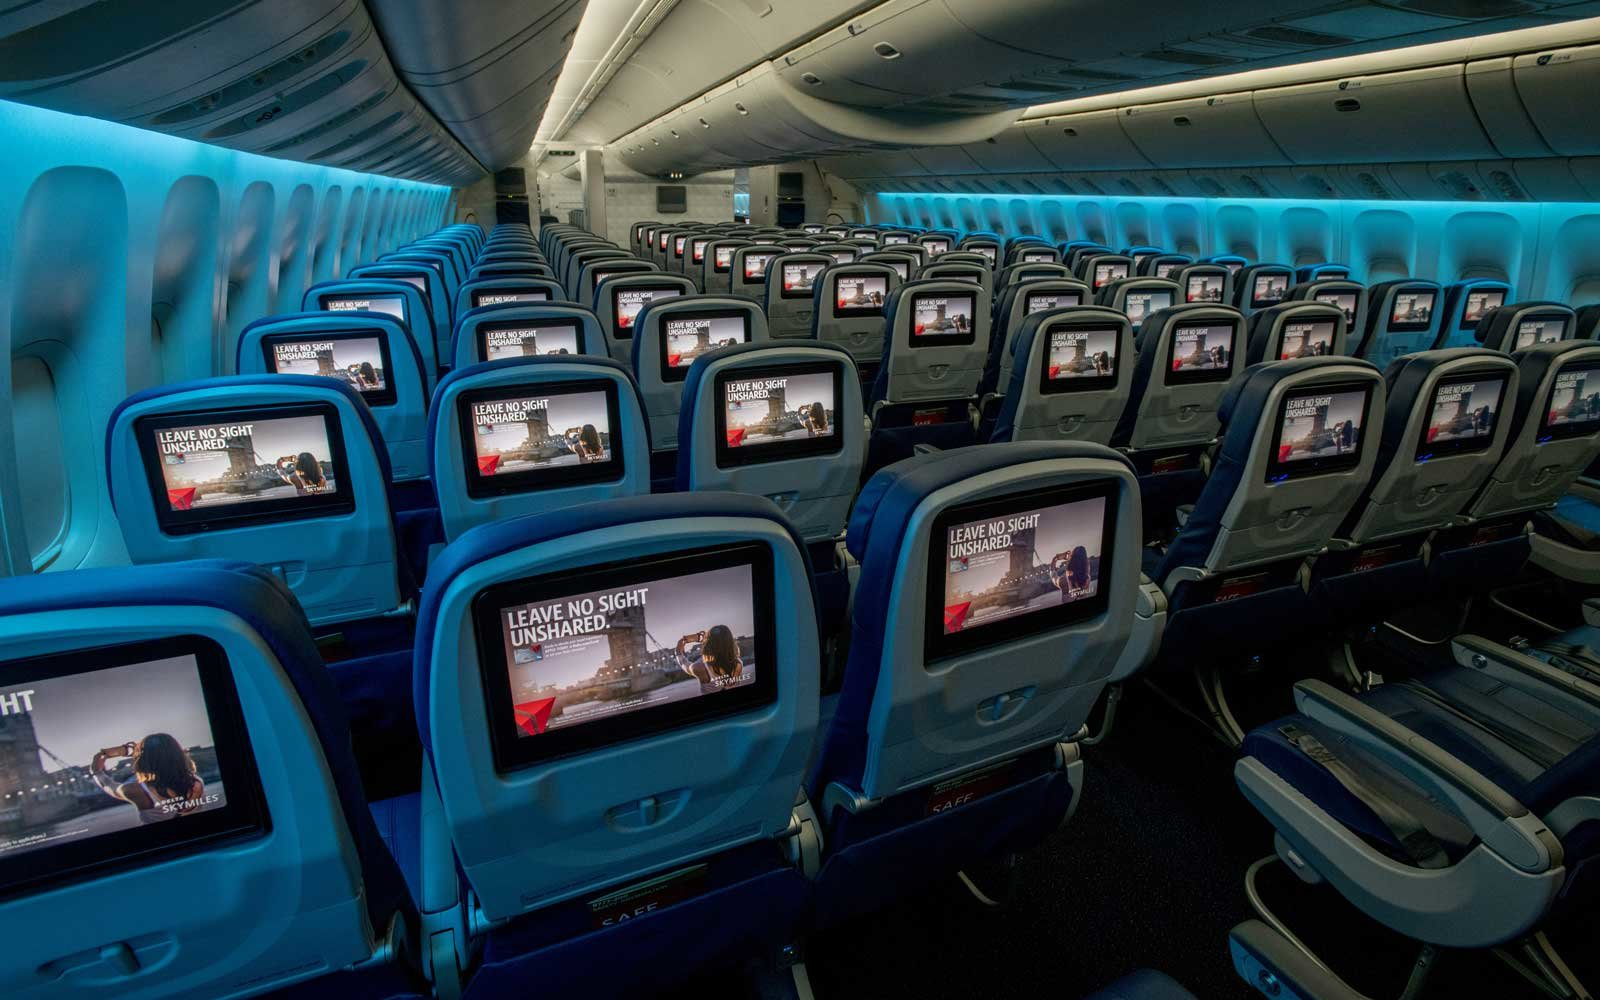 Delta Airlines main cabin seats with screens